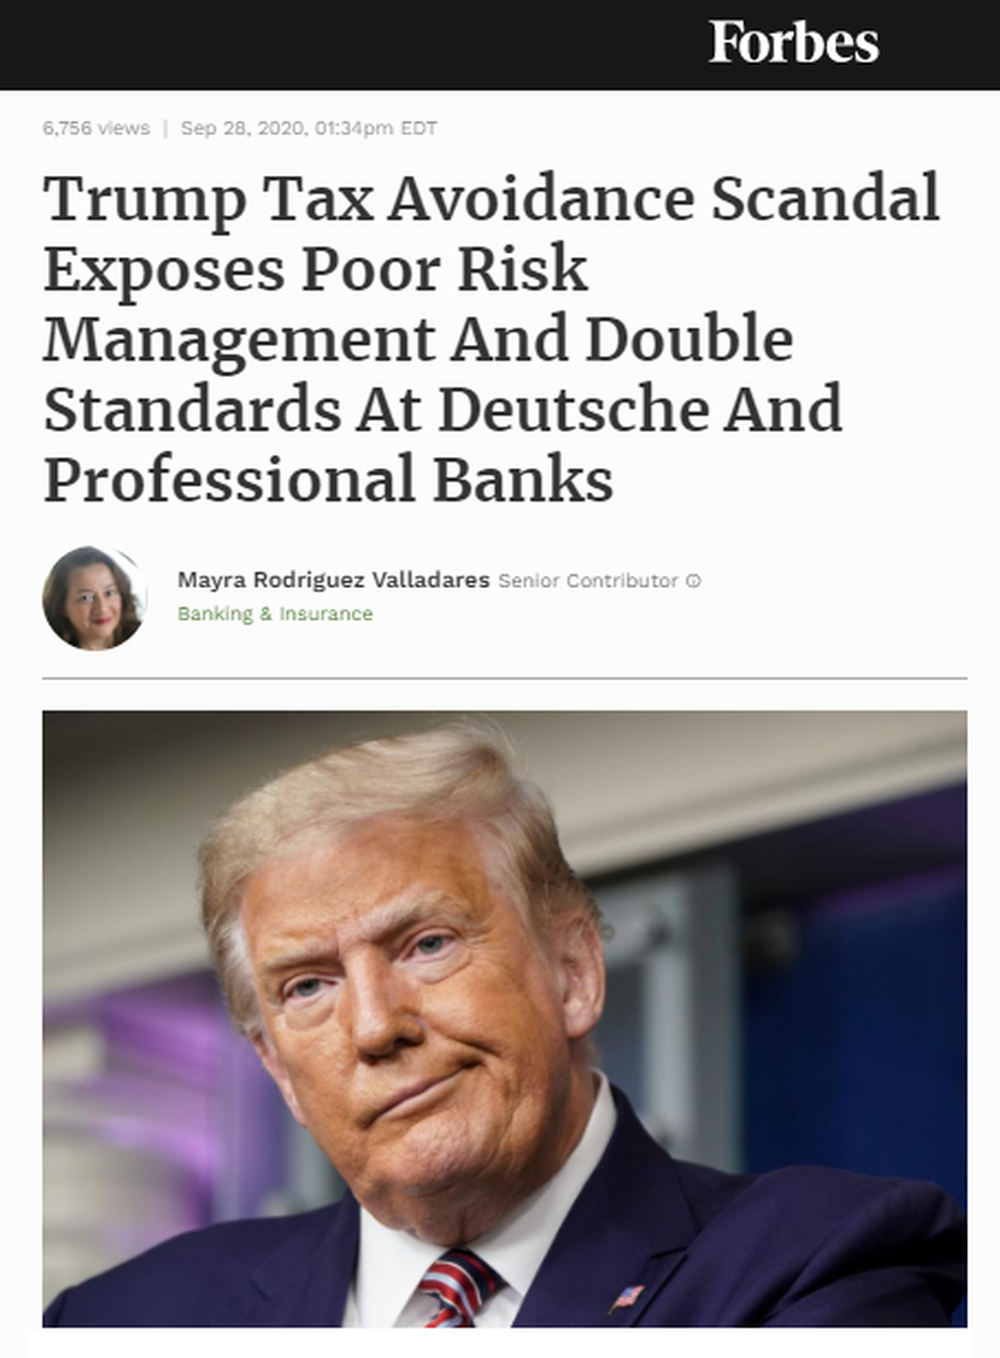 Trump-Tax-Avoidance-Scandal-Exposes-Poor-Risk-Management-And-Double-Standards-At-Deutsche-And-Professional-Banks.png